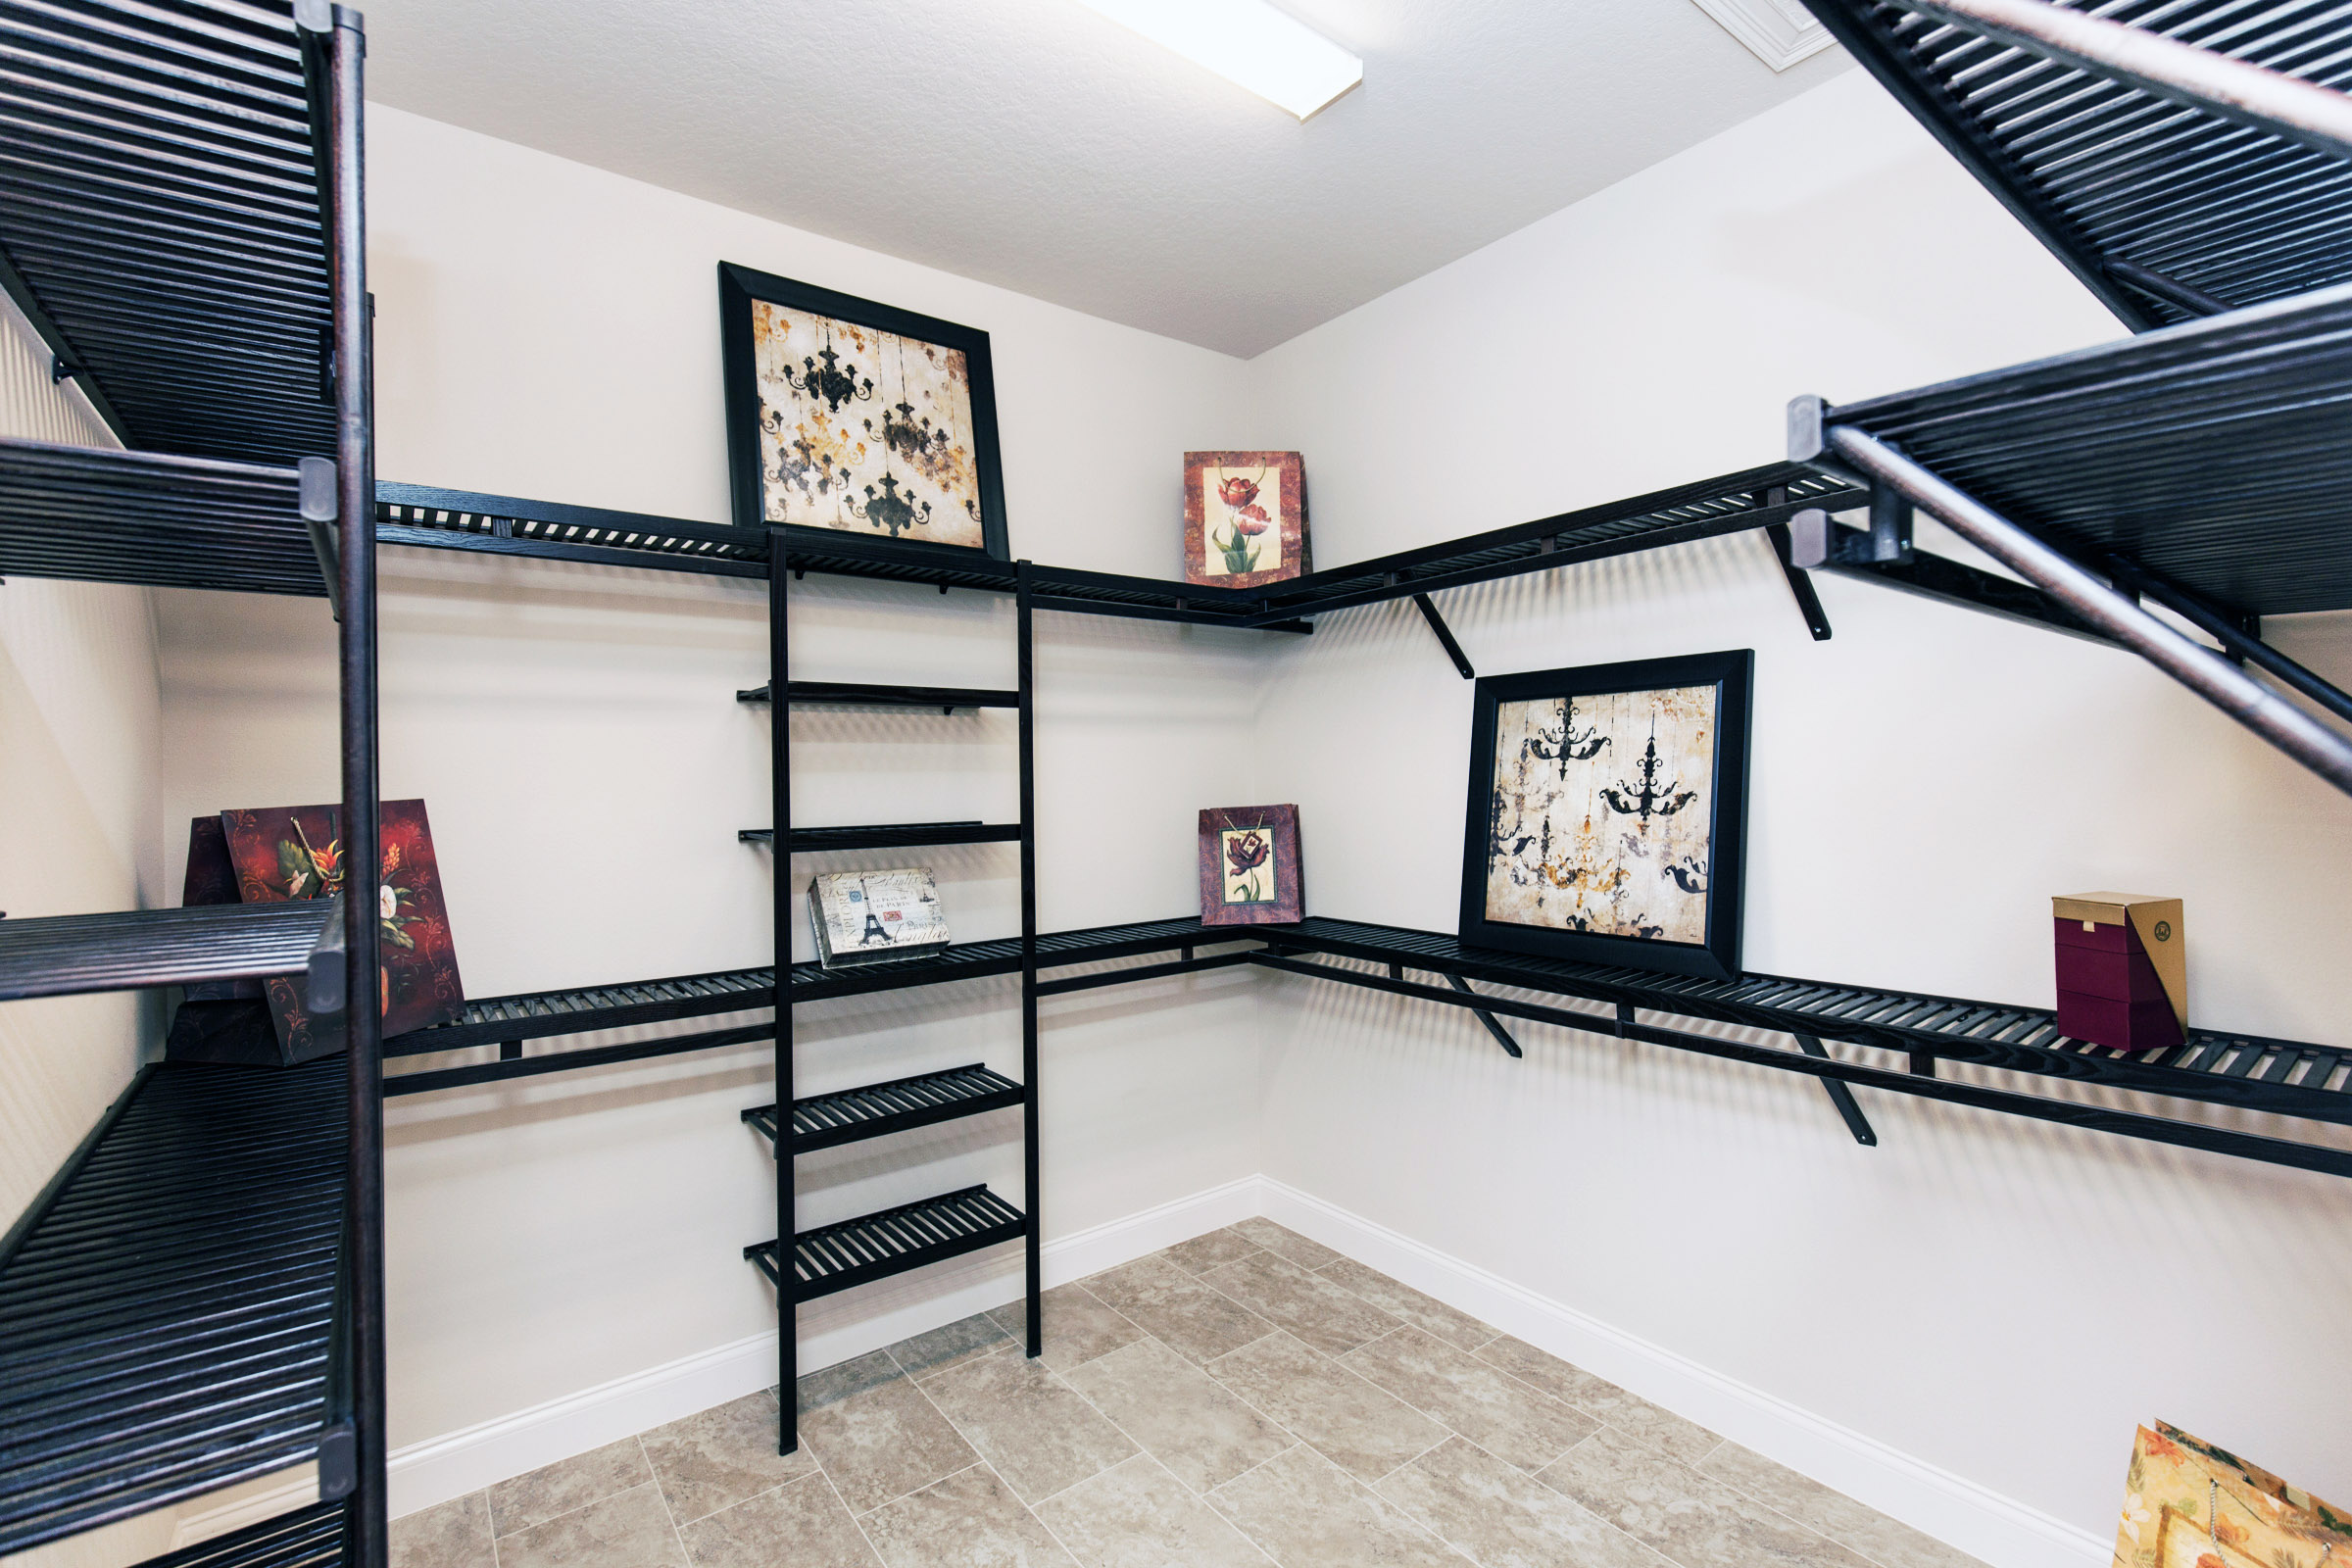 Walk in closet with white walls and dark shelving